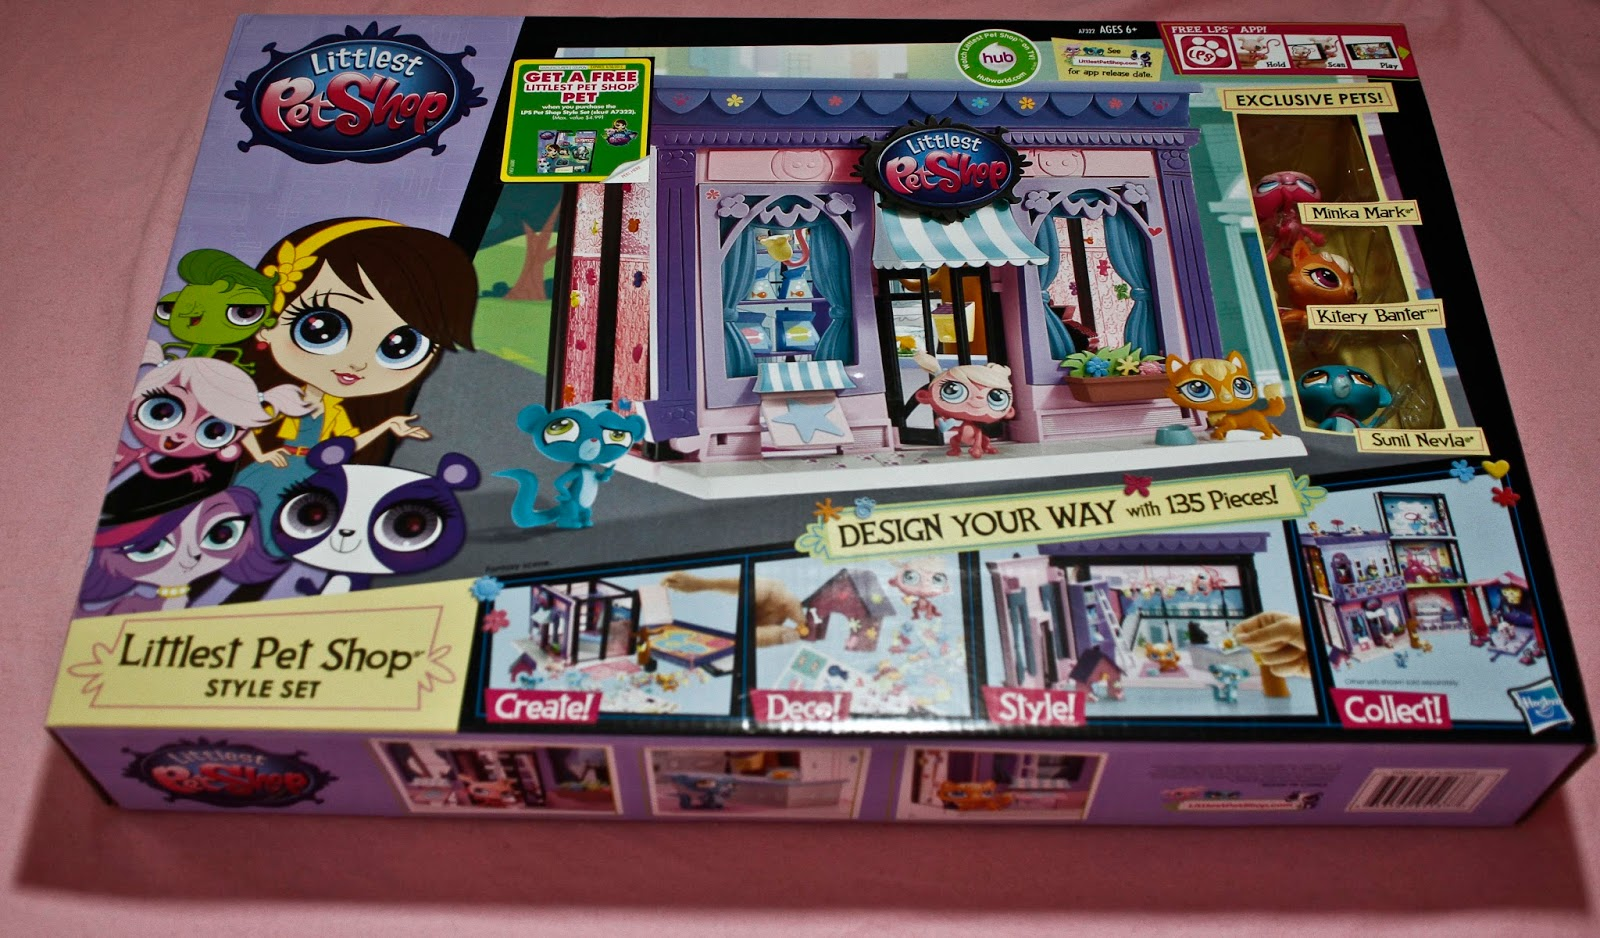 showing a photogrpah of the littlest pet shop style set before opening the box